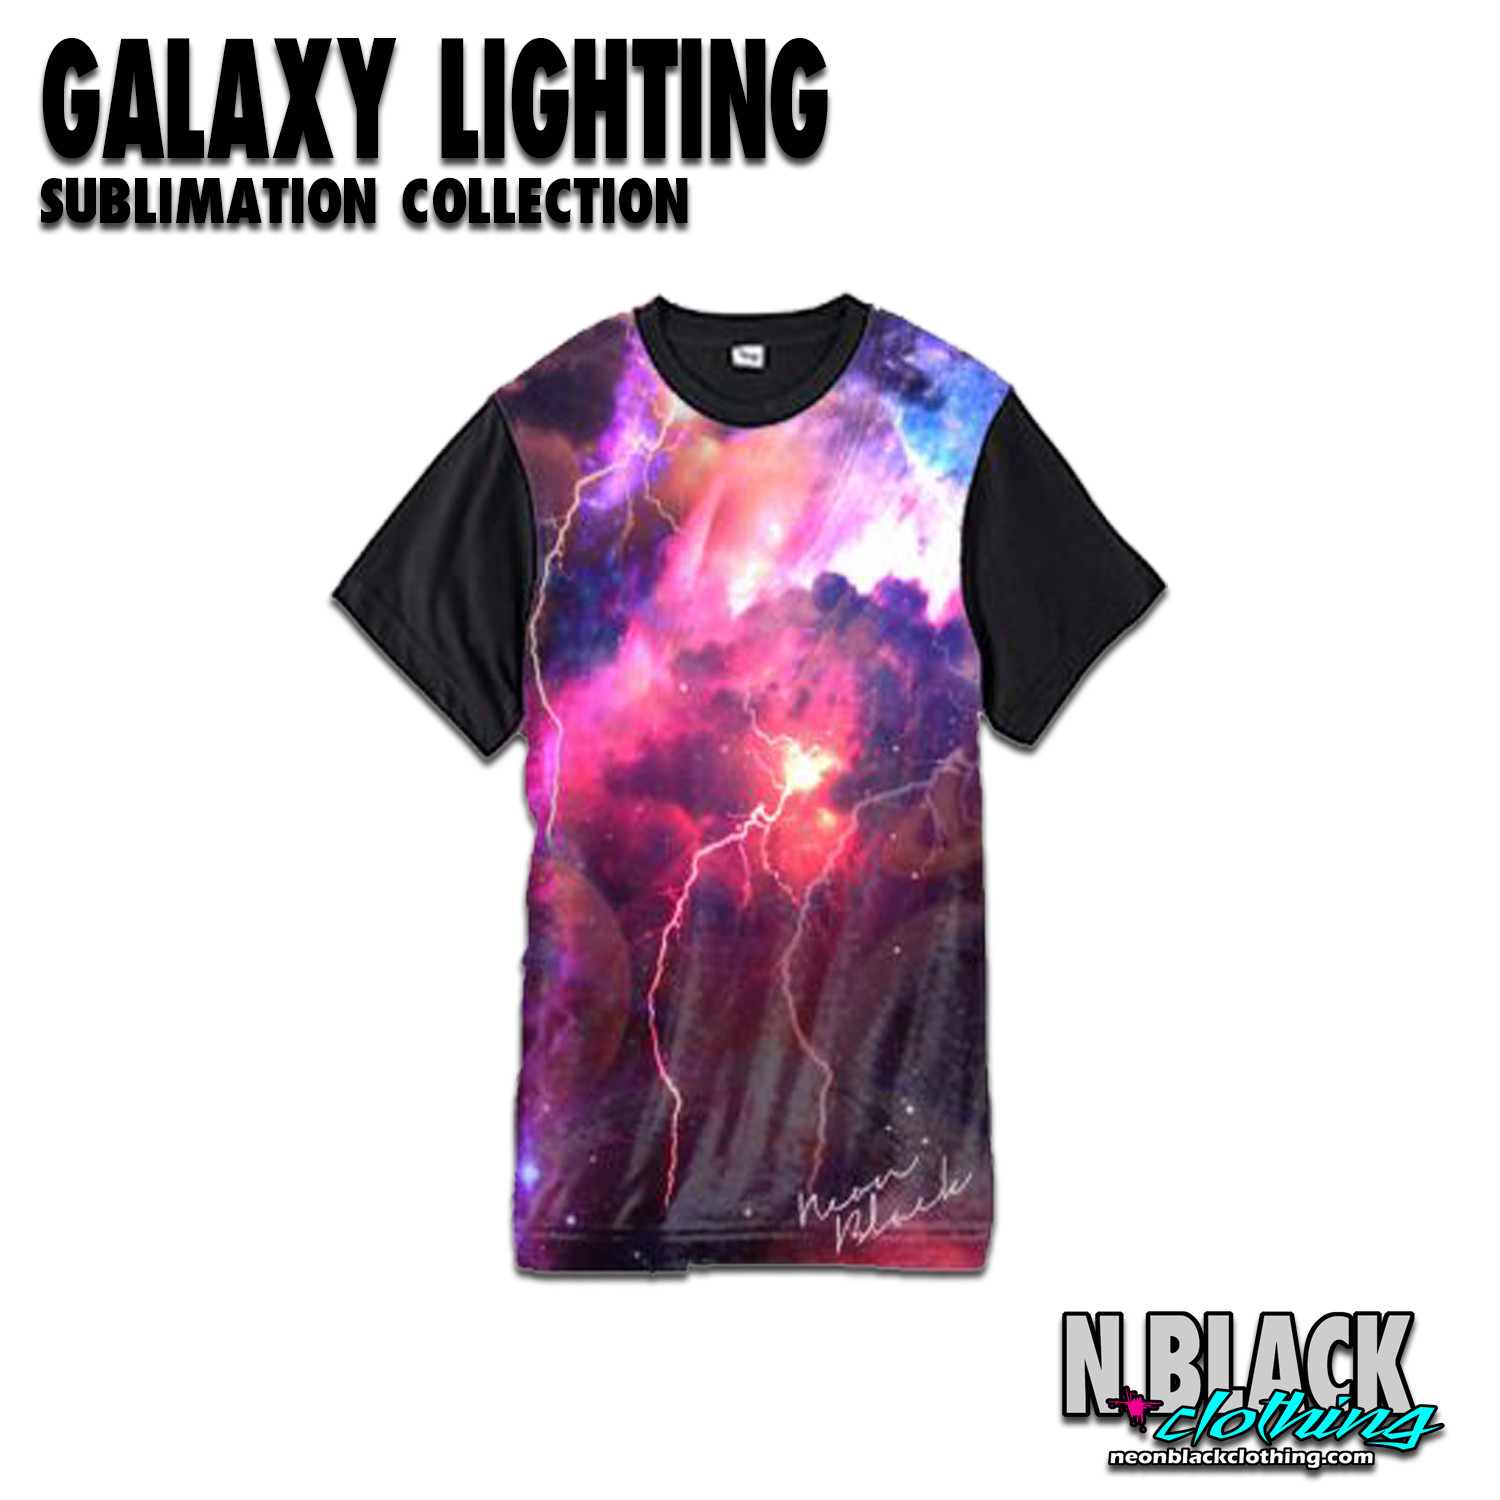 Galaxy Lighting - Sublimation Collection #1